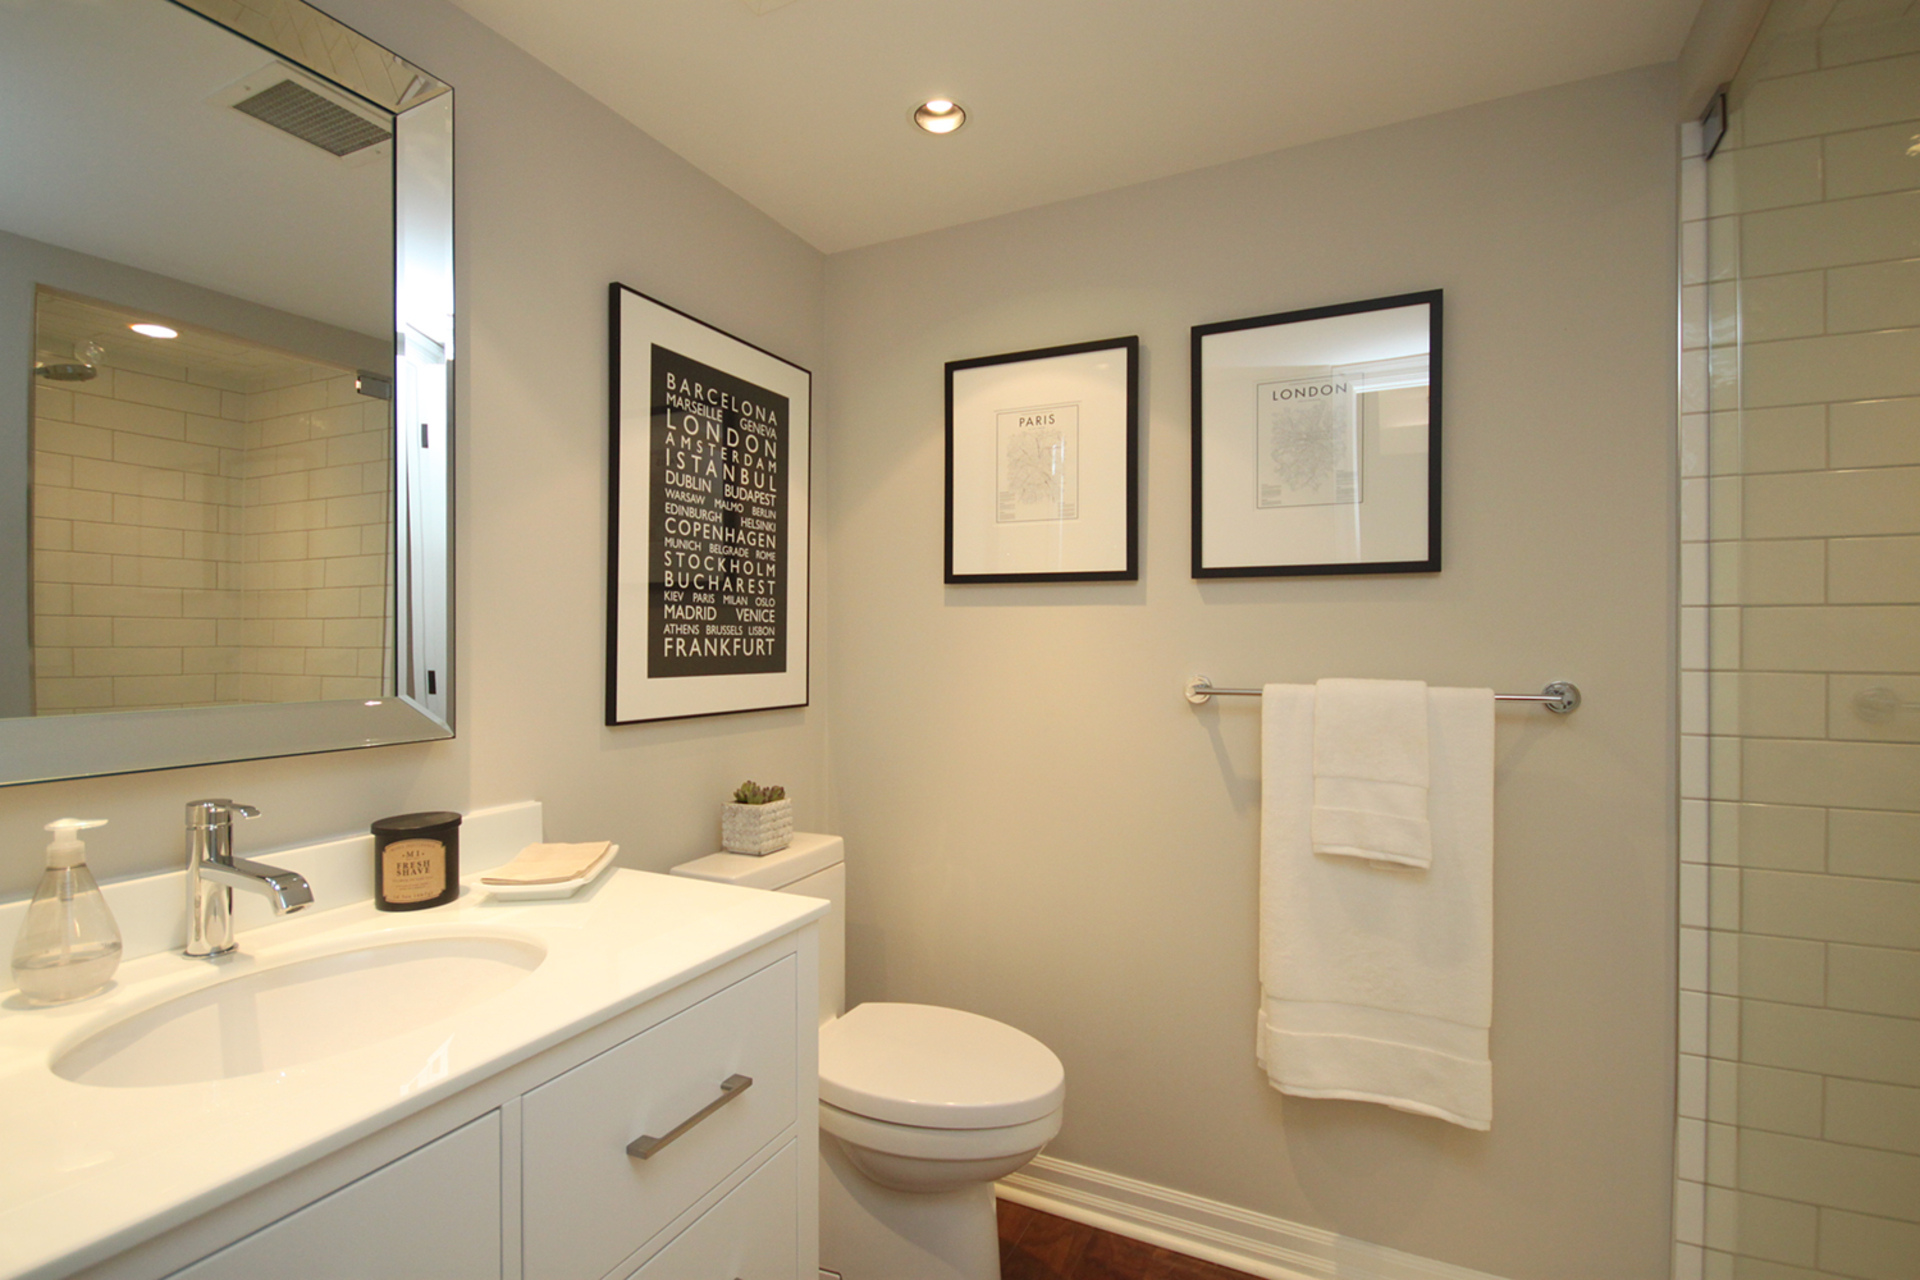 3 Piece Bathroom at PH9 - 2727 Yonge Street, Lawrence Park South, Toronto